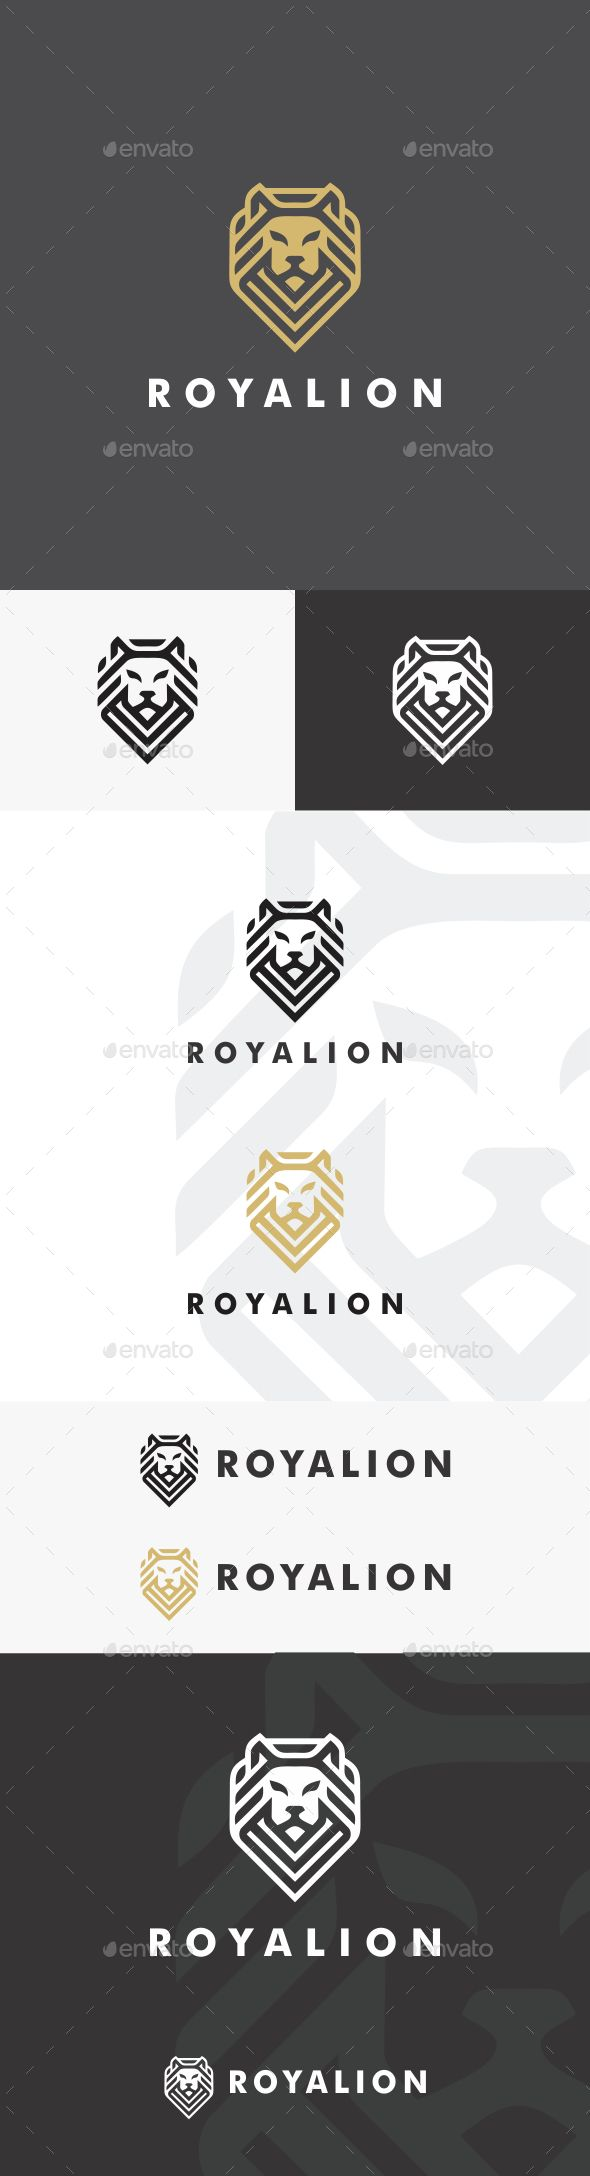 Royal Lion Logo Template - #Animals #Logo #Templates Download here: https://graphicriver.net/item/royal-lion-logo-template/20334455?ref=alena994